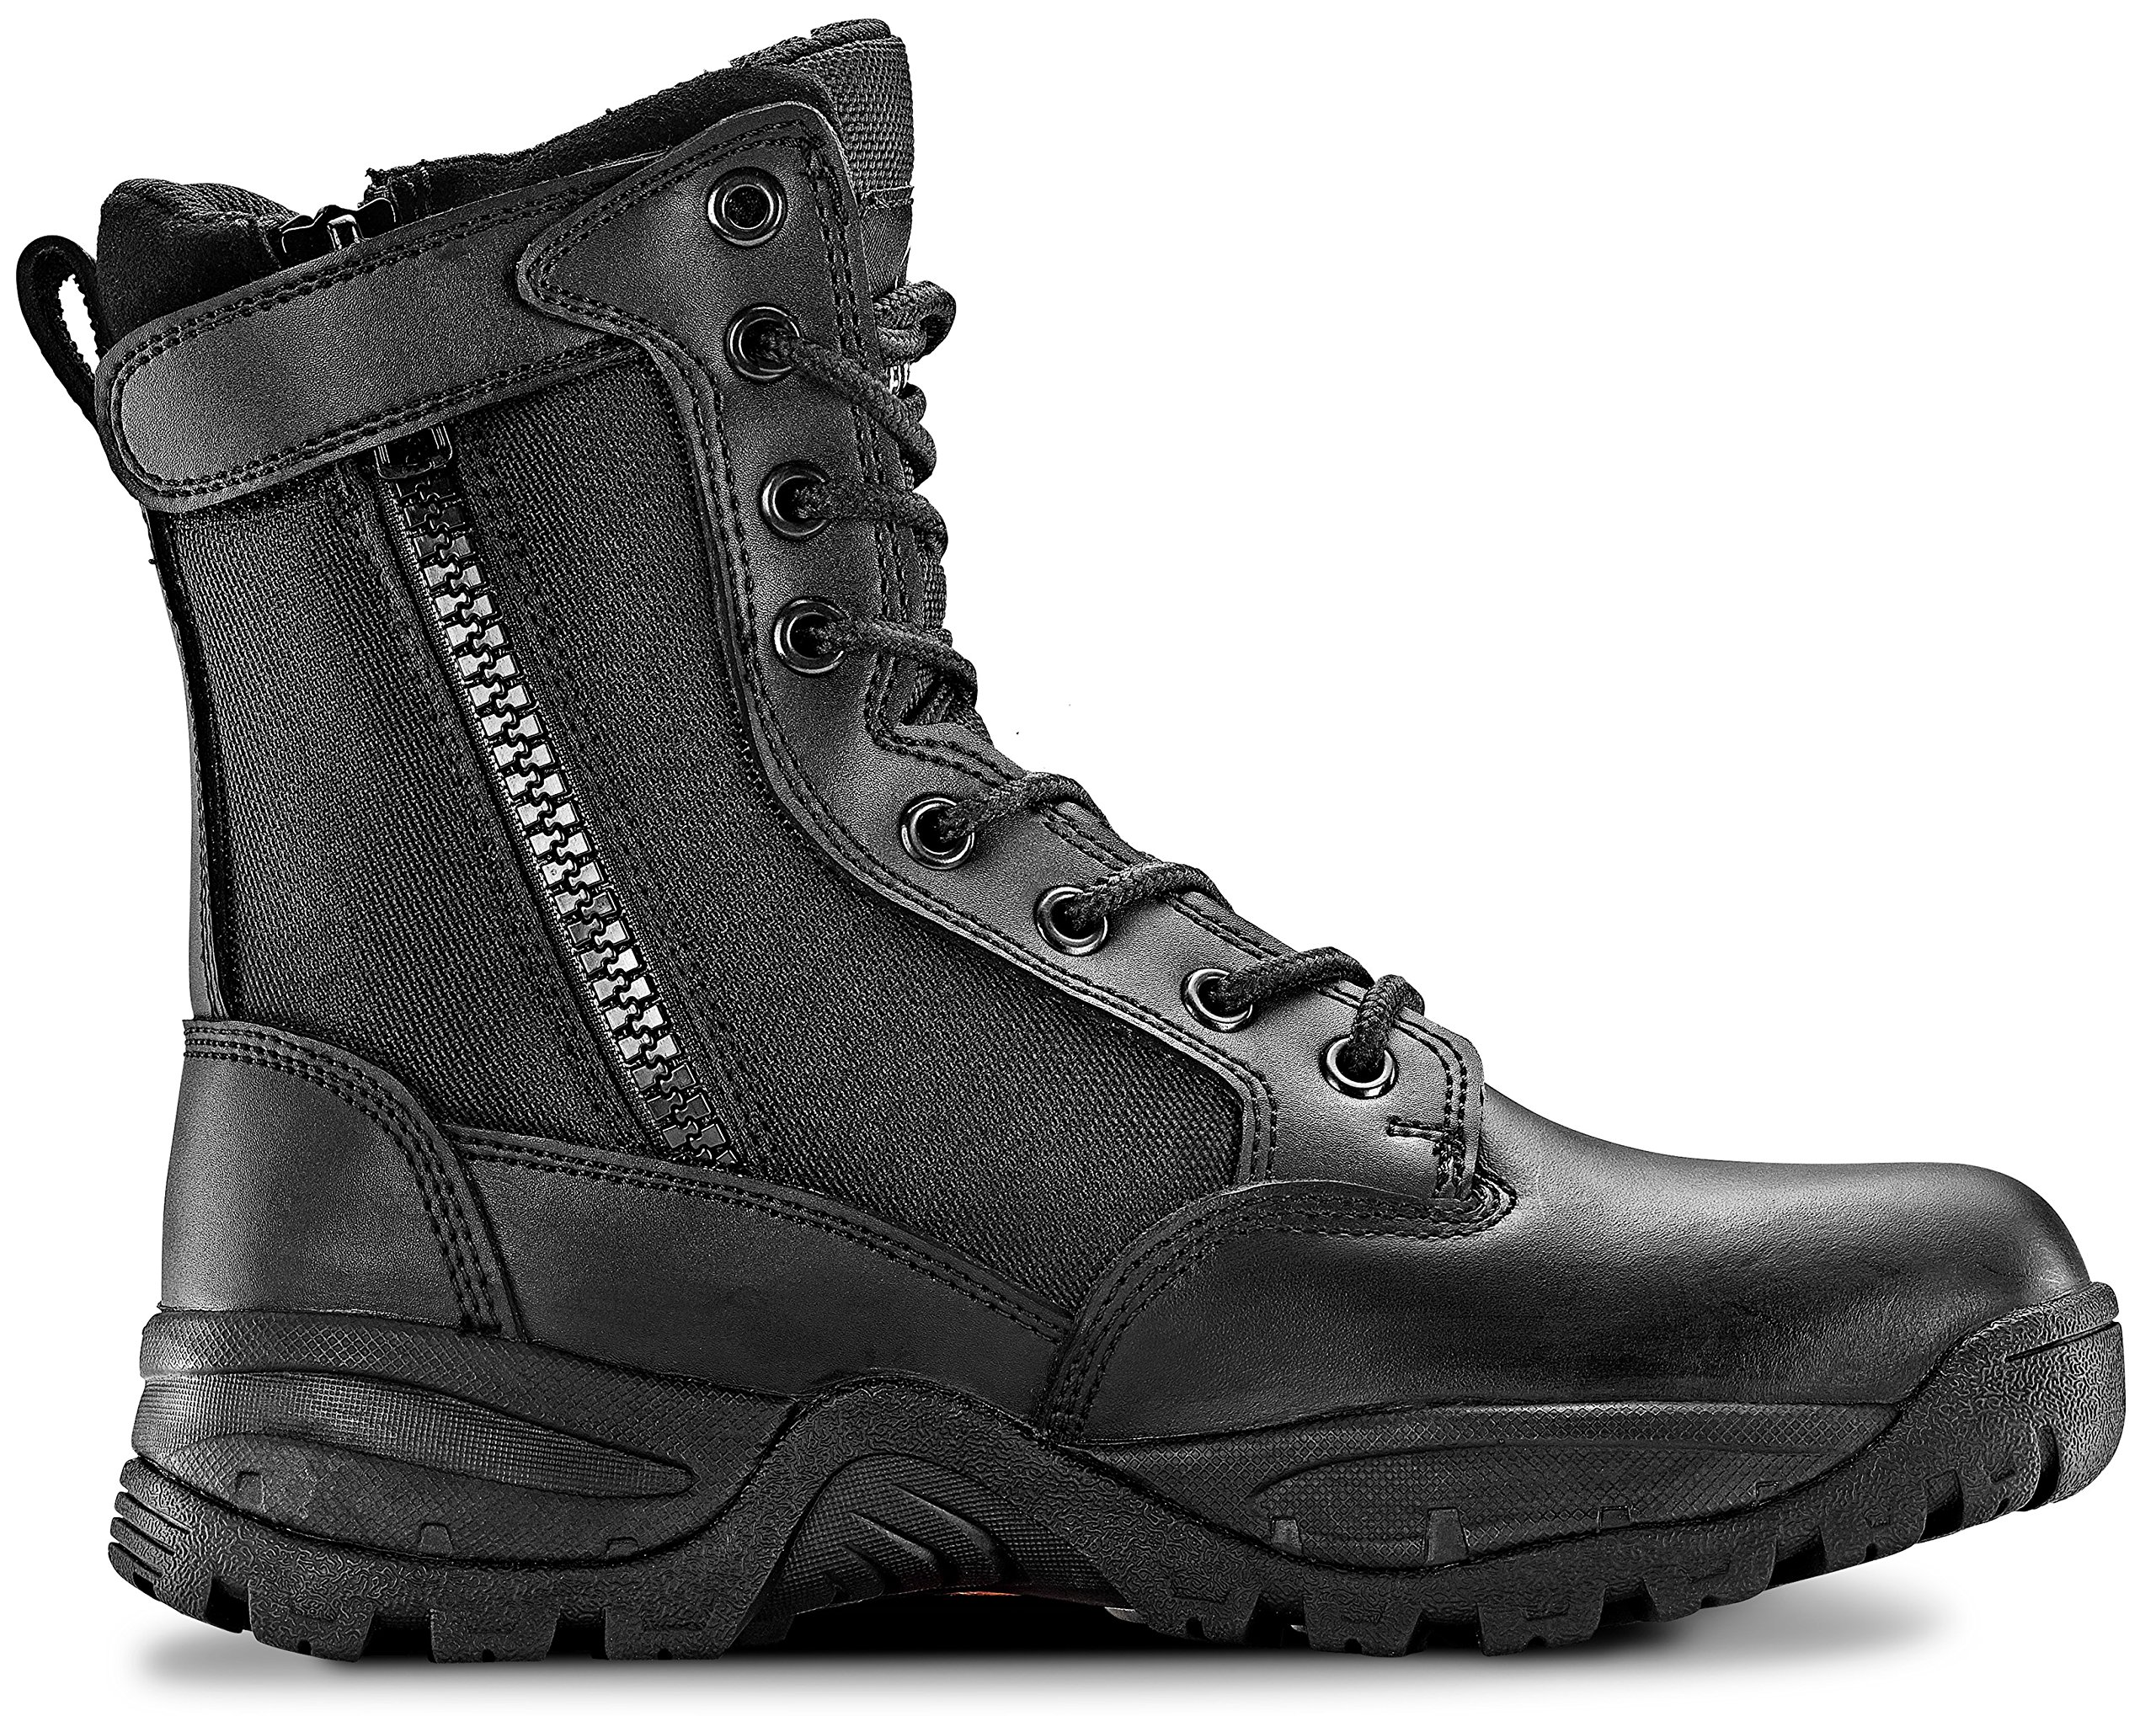 Maelstrom TAC Force 8'' Women's Black Waterproof Boots Zipper – Military, Work & Tactical Boots – Athletic, Breathable, Durable, Comfortable & Lightweight Boots Women, Size 7M